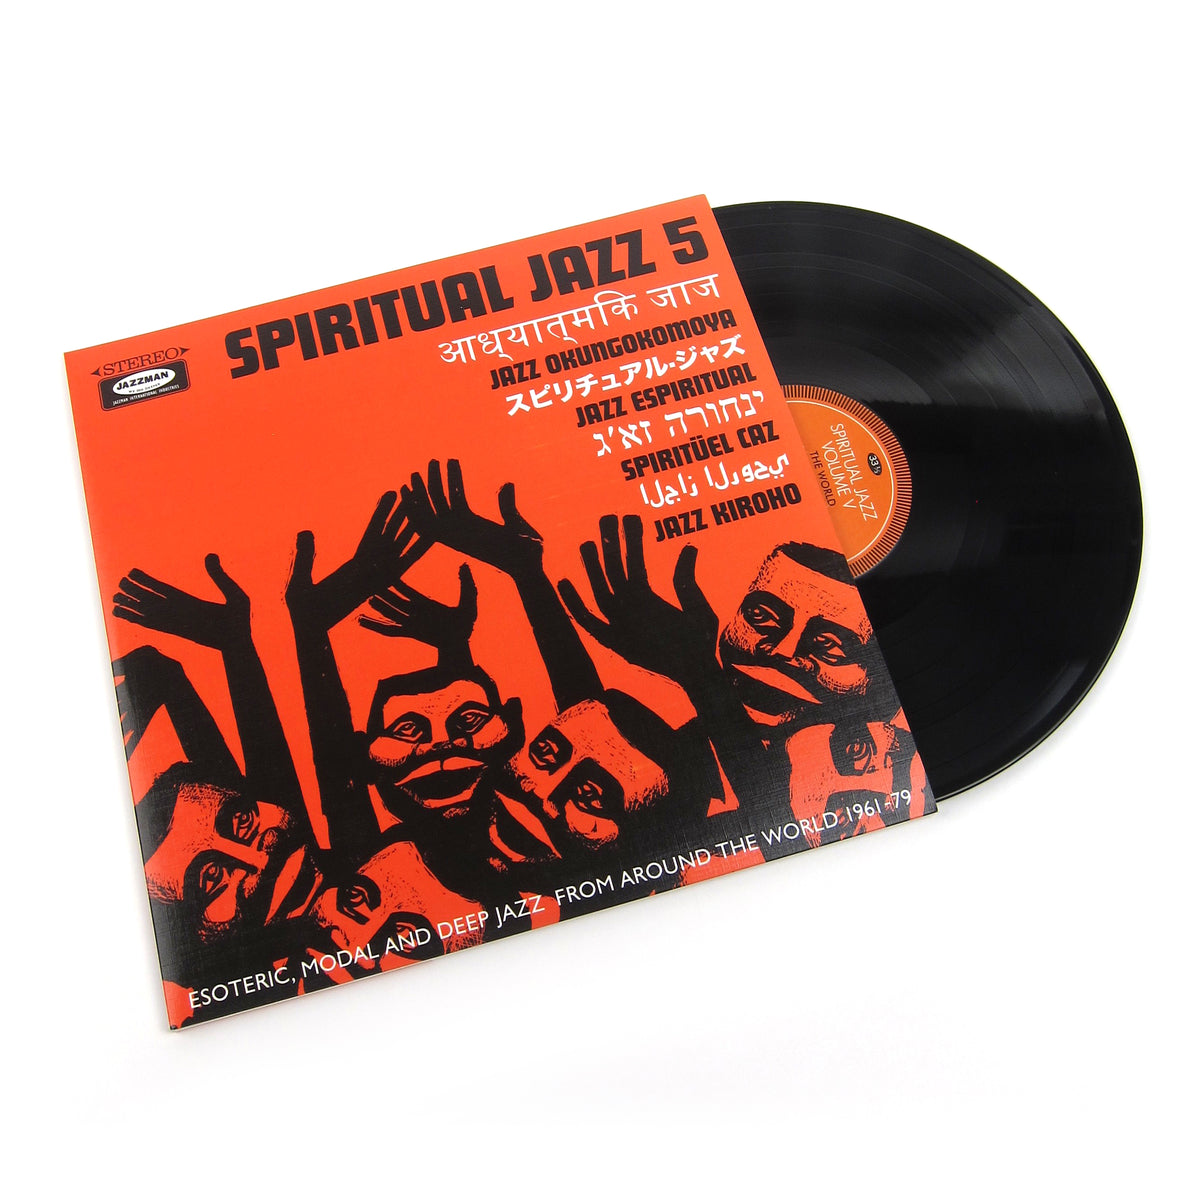 Jazzman: Spiritual Jazz Vol.5 - Esoteric, Modal And Deep Jazz From Around The World 1961-79 Vinyl 2LP